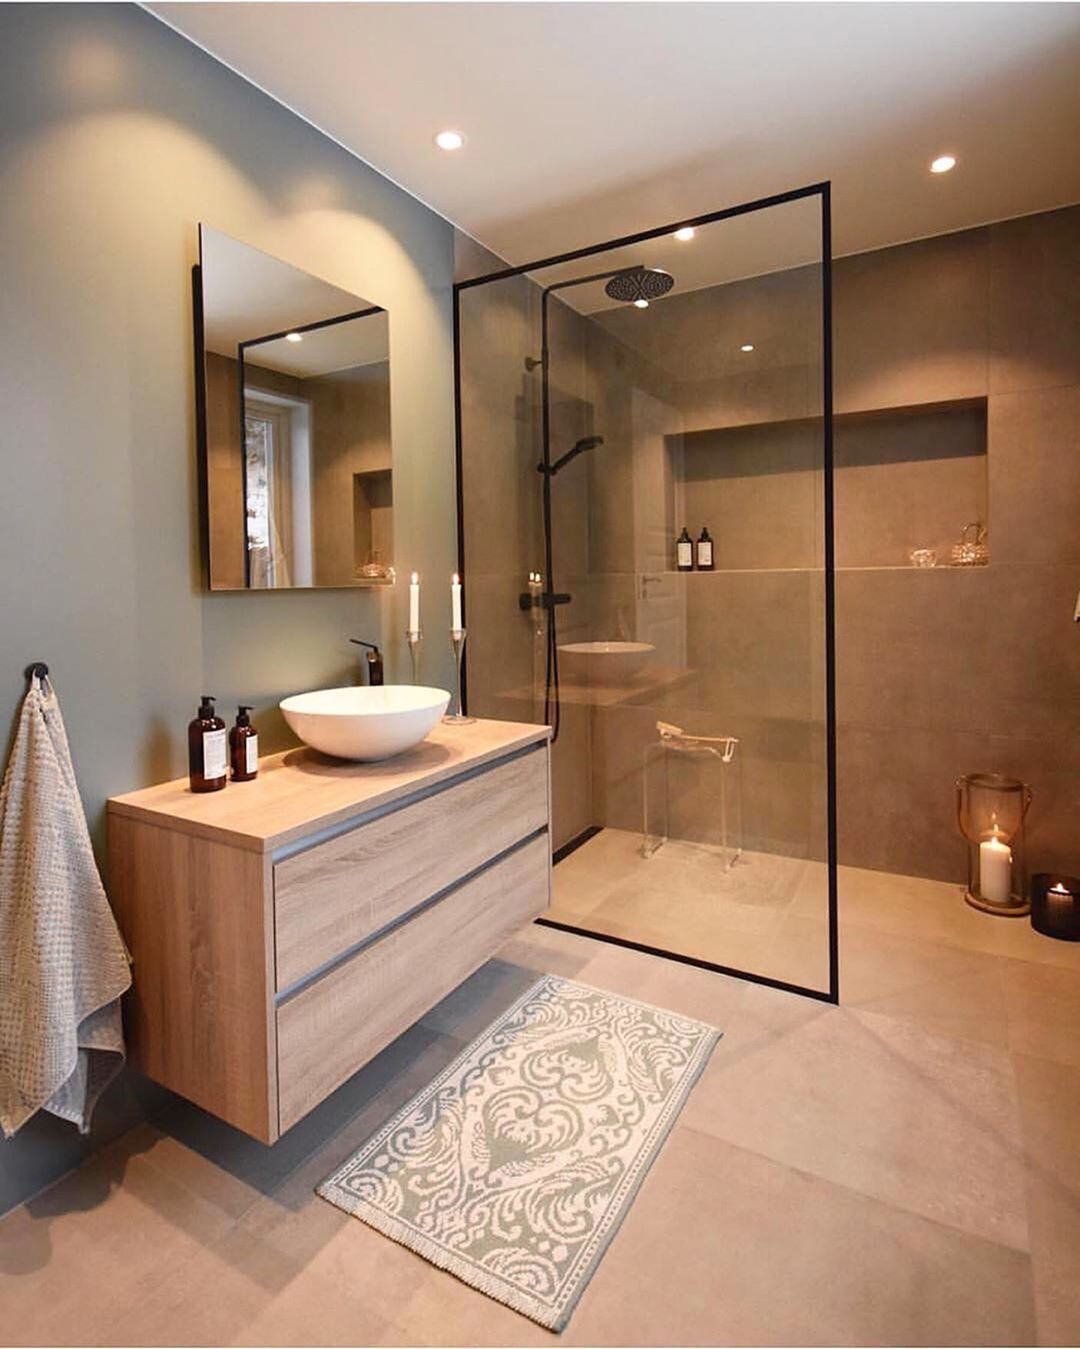 Home Design Decor On Instagram Do You Love Warm And Cozy Or Bright And Minimalist Bathroom Bathroom Style Minimalist Bathroom Couples Bathroom